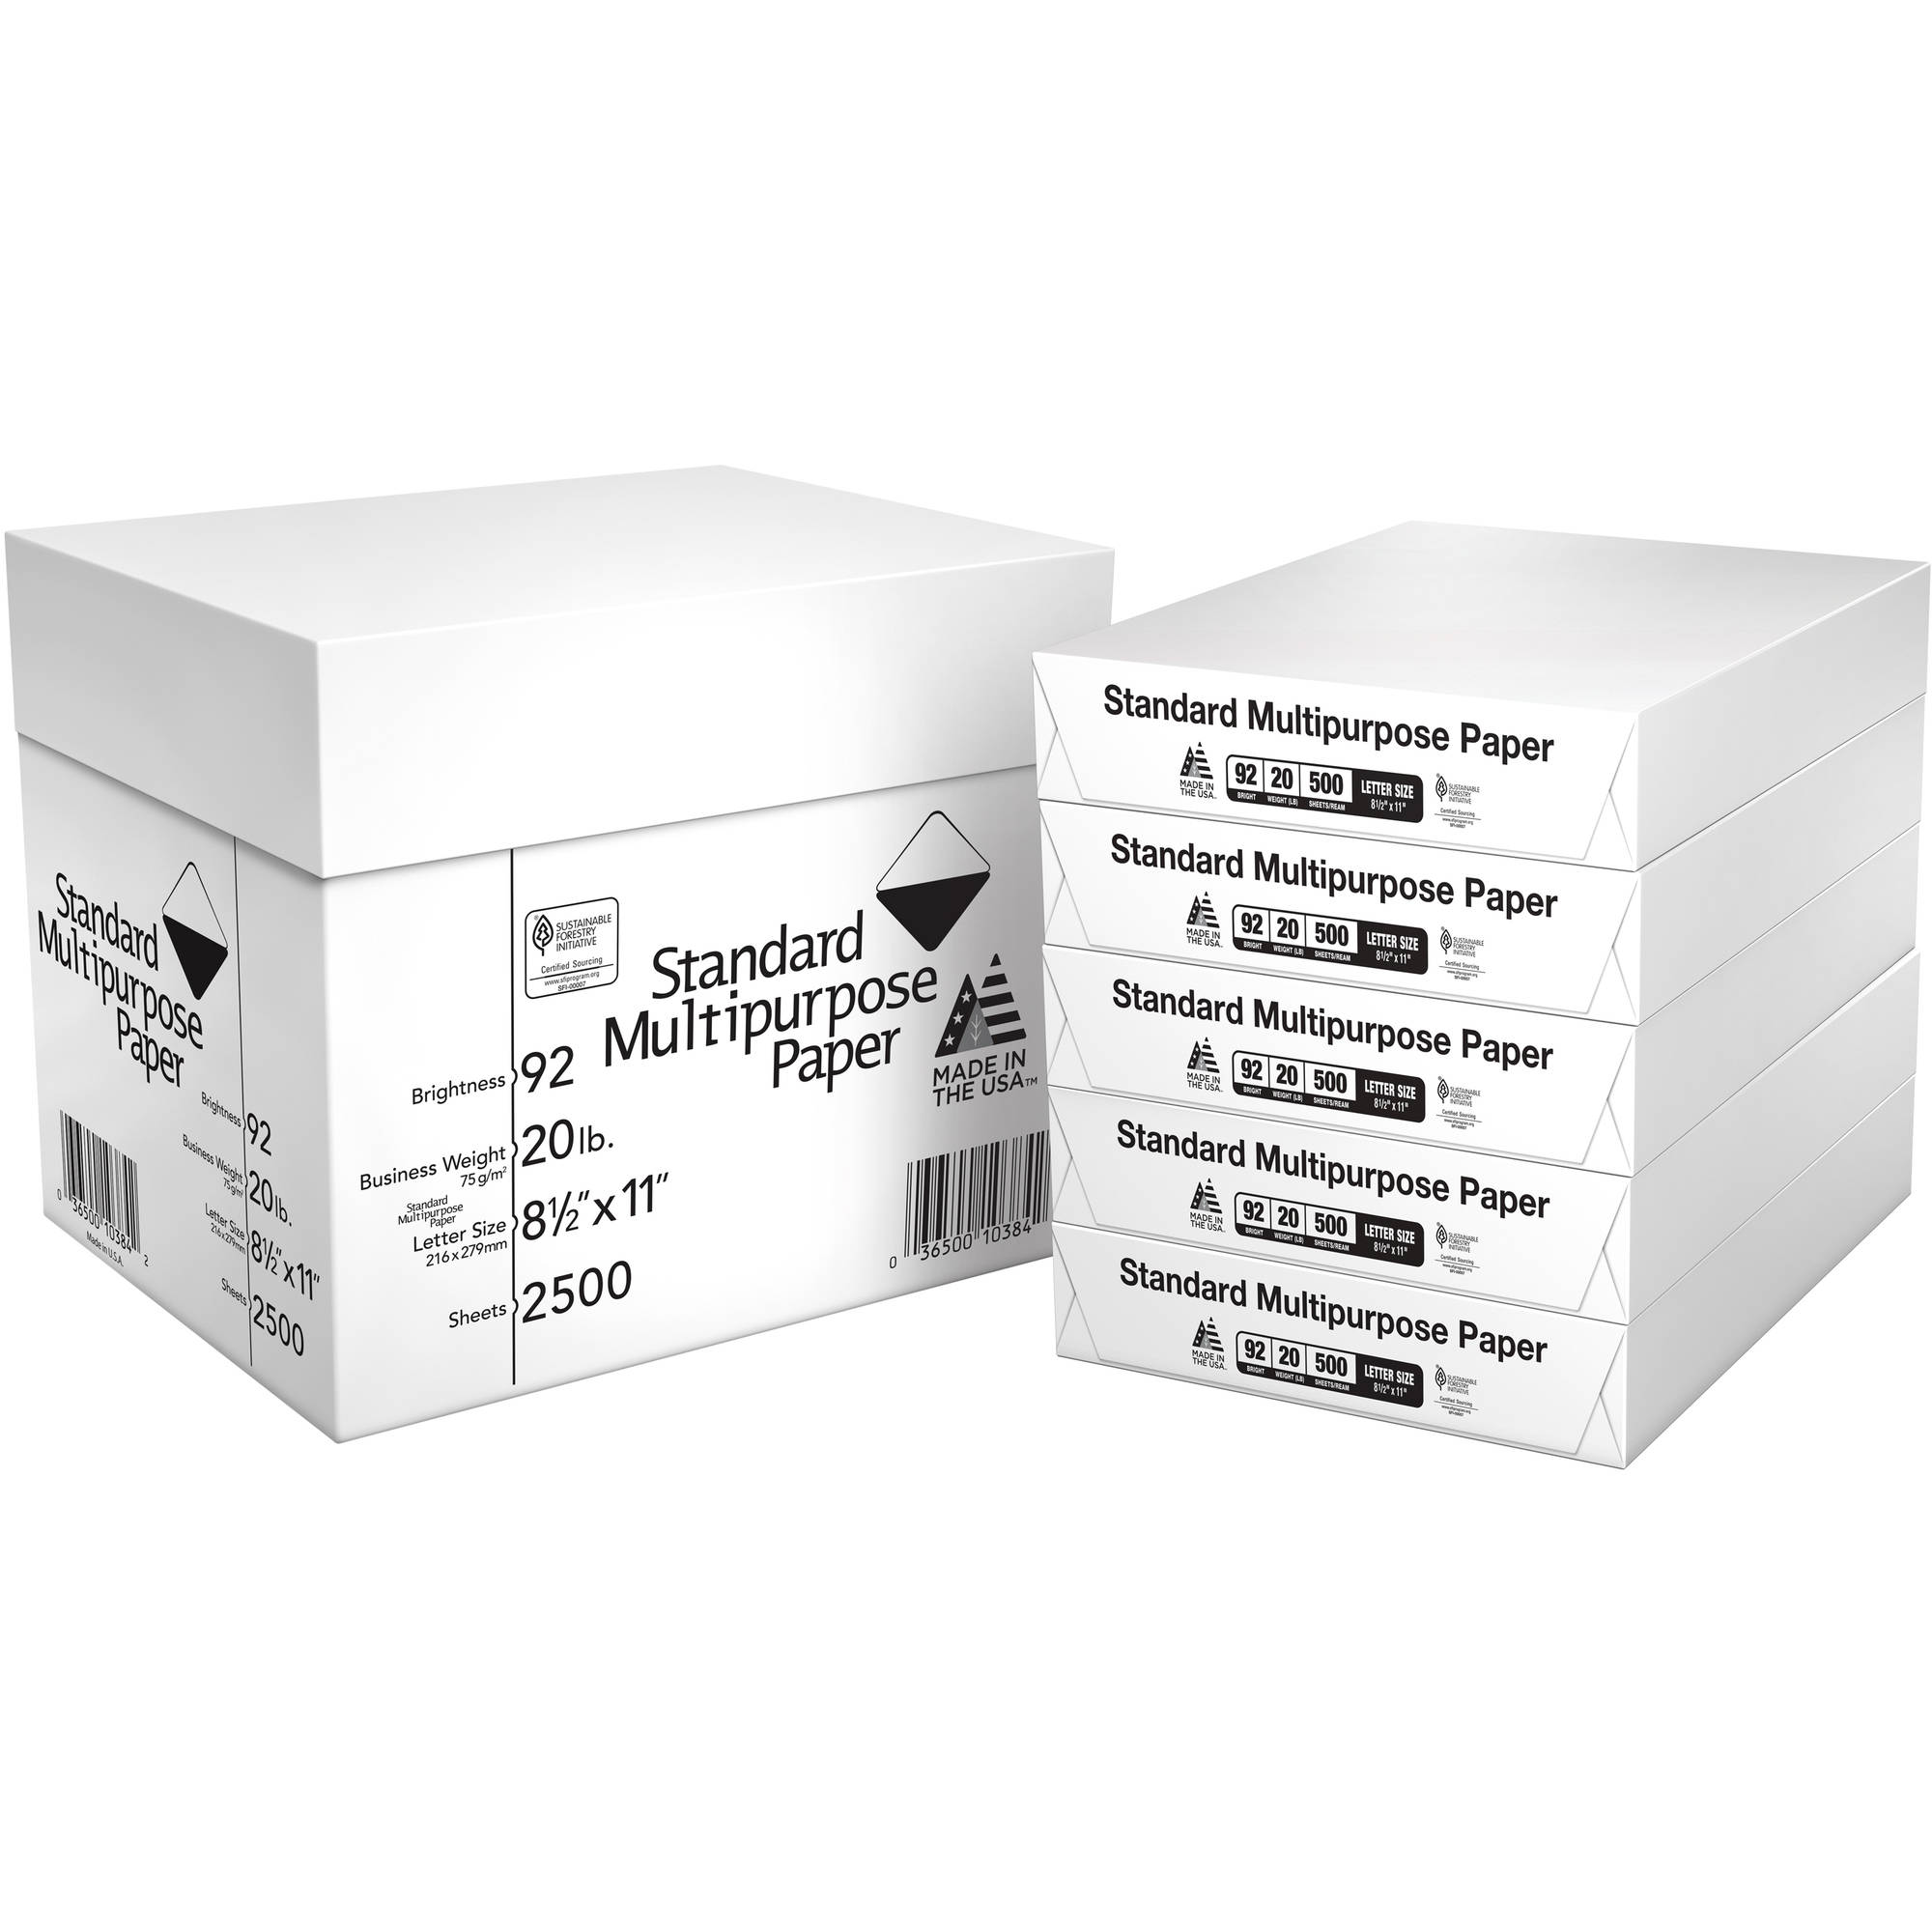 "Standard Multipurpose Paper, 8-1/2"" x 11"", 92 Bright, 2500 Sheets, 5 Reams"